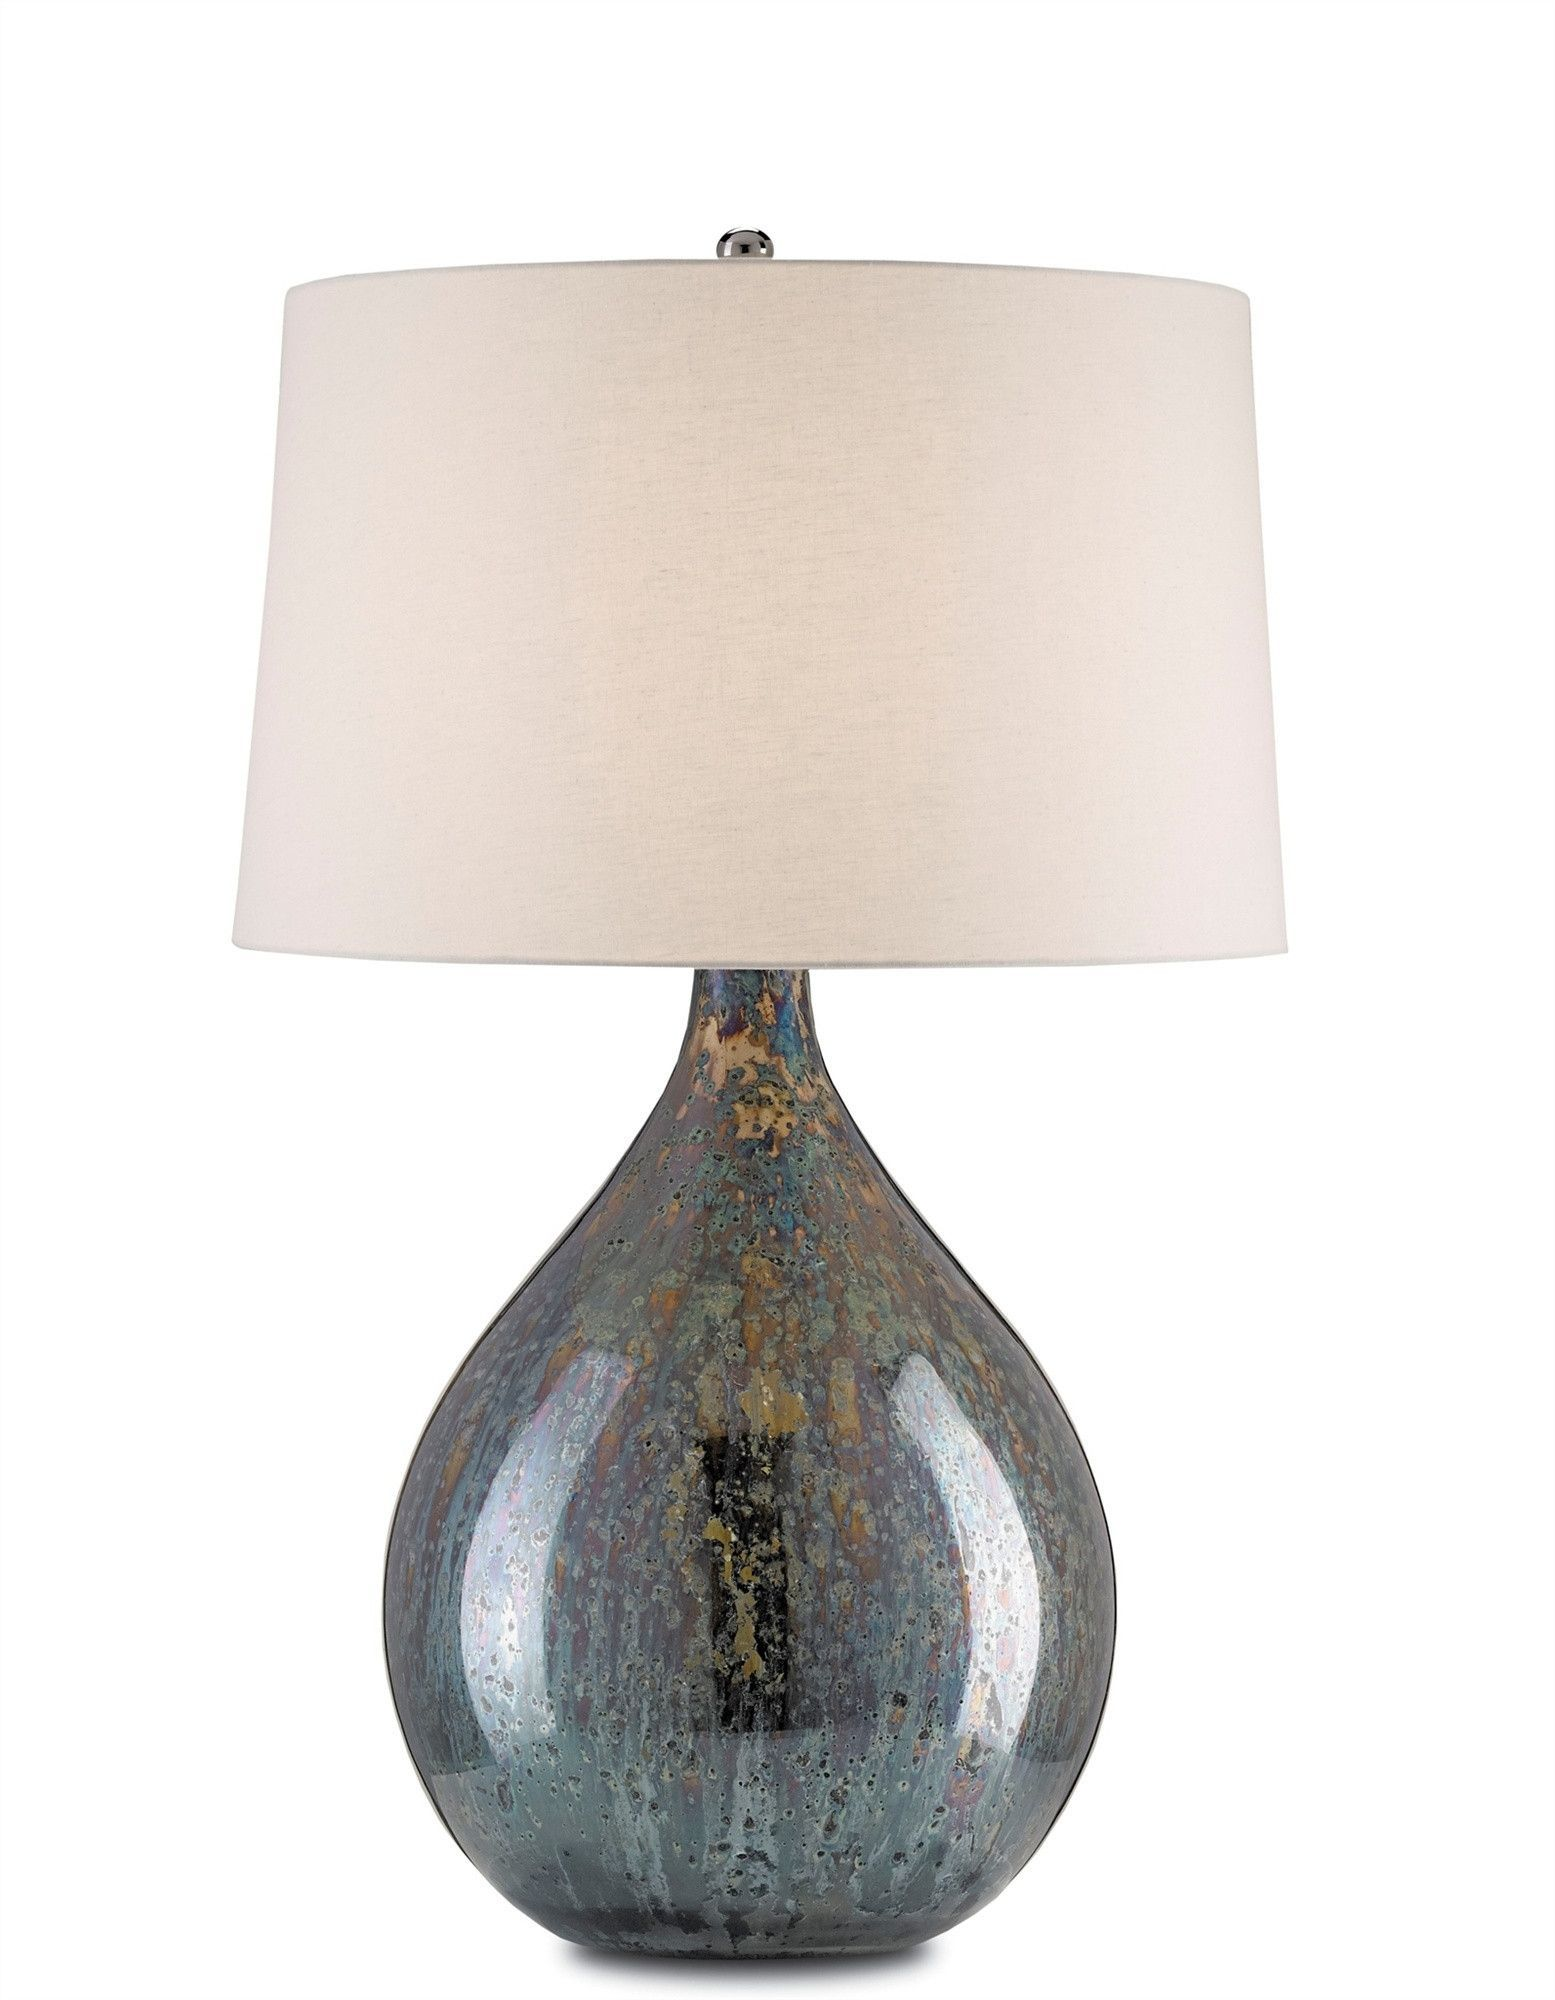 Merseyside Table Lamp design by Currey & Company